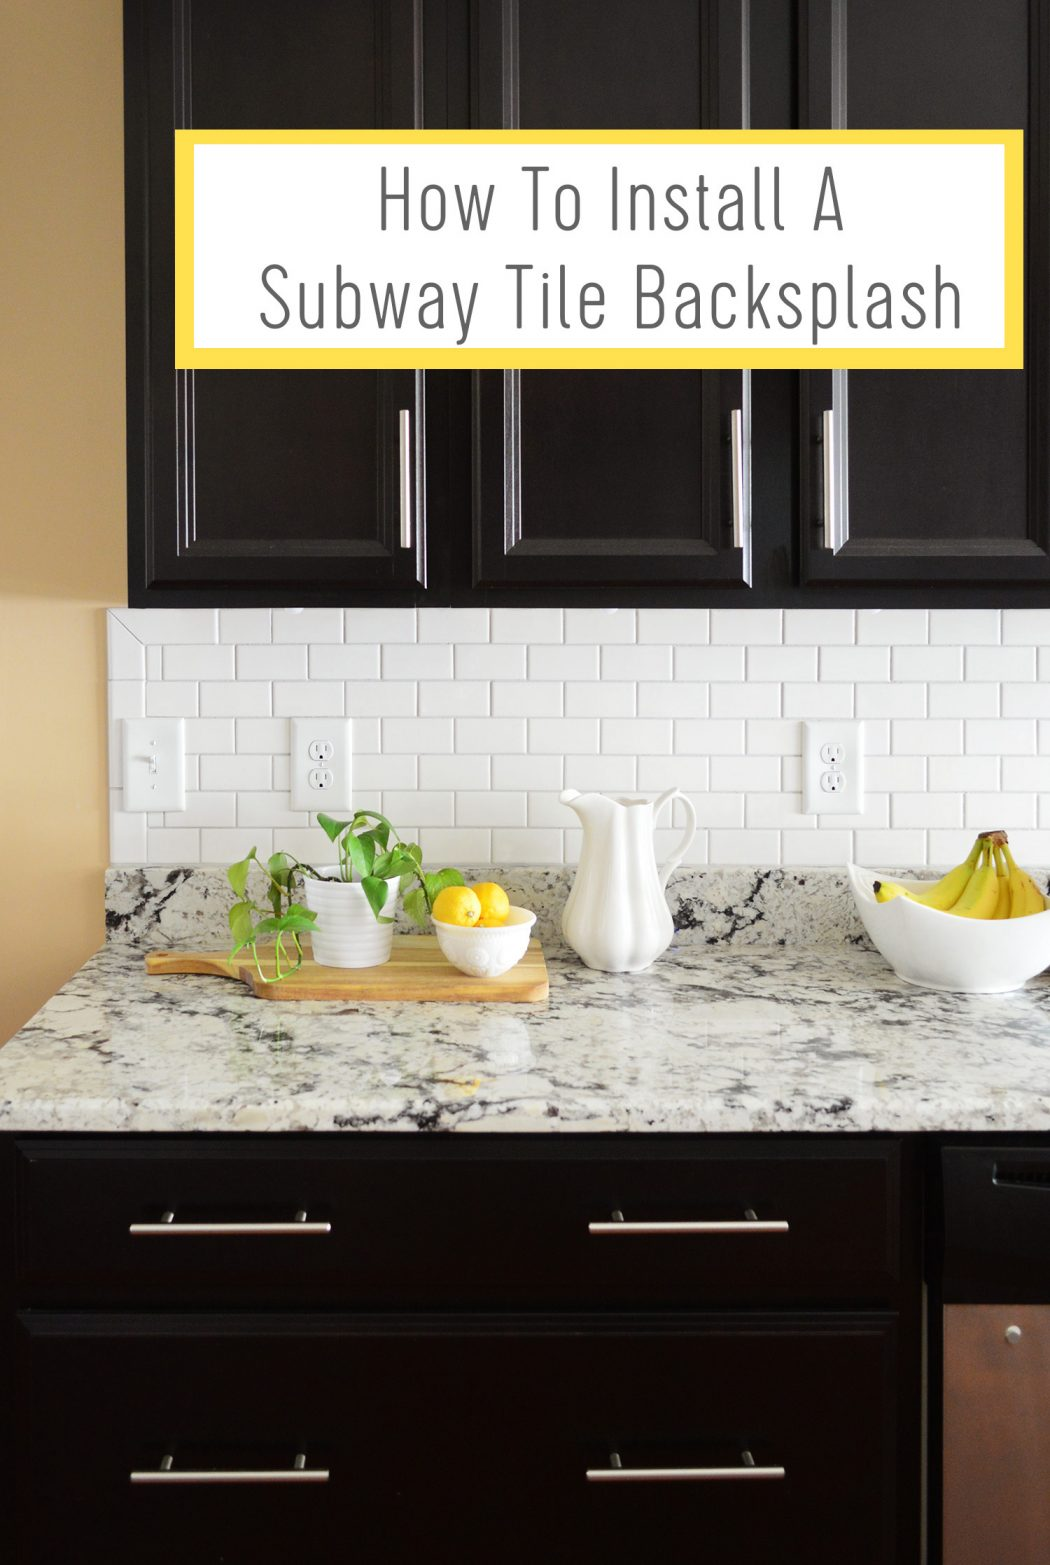 How to install a subway tile kitchen backsplash young house love how to install a subway tile kitchen backsplash dailygadgetfo Images